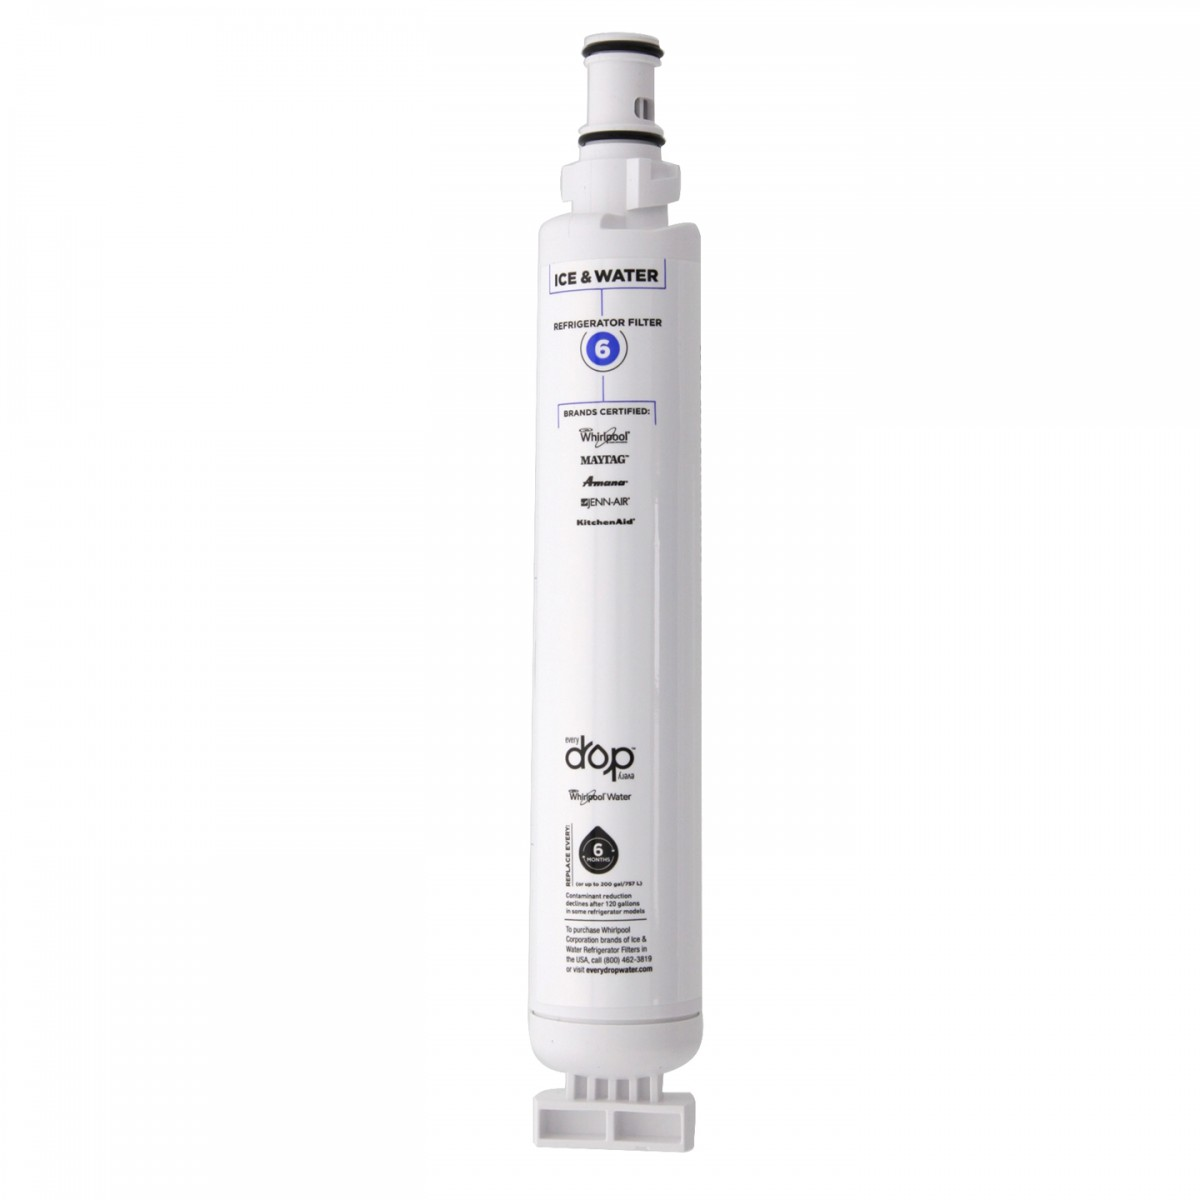 whirlpool whole house water filter. Whirlpool EveryDrop EDR6D1 (Filter 6) Ice And Water Refrigerator Filter Whole House